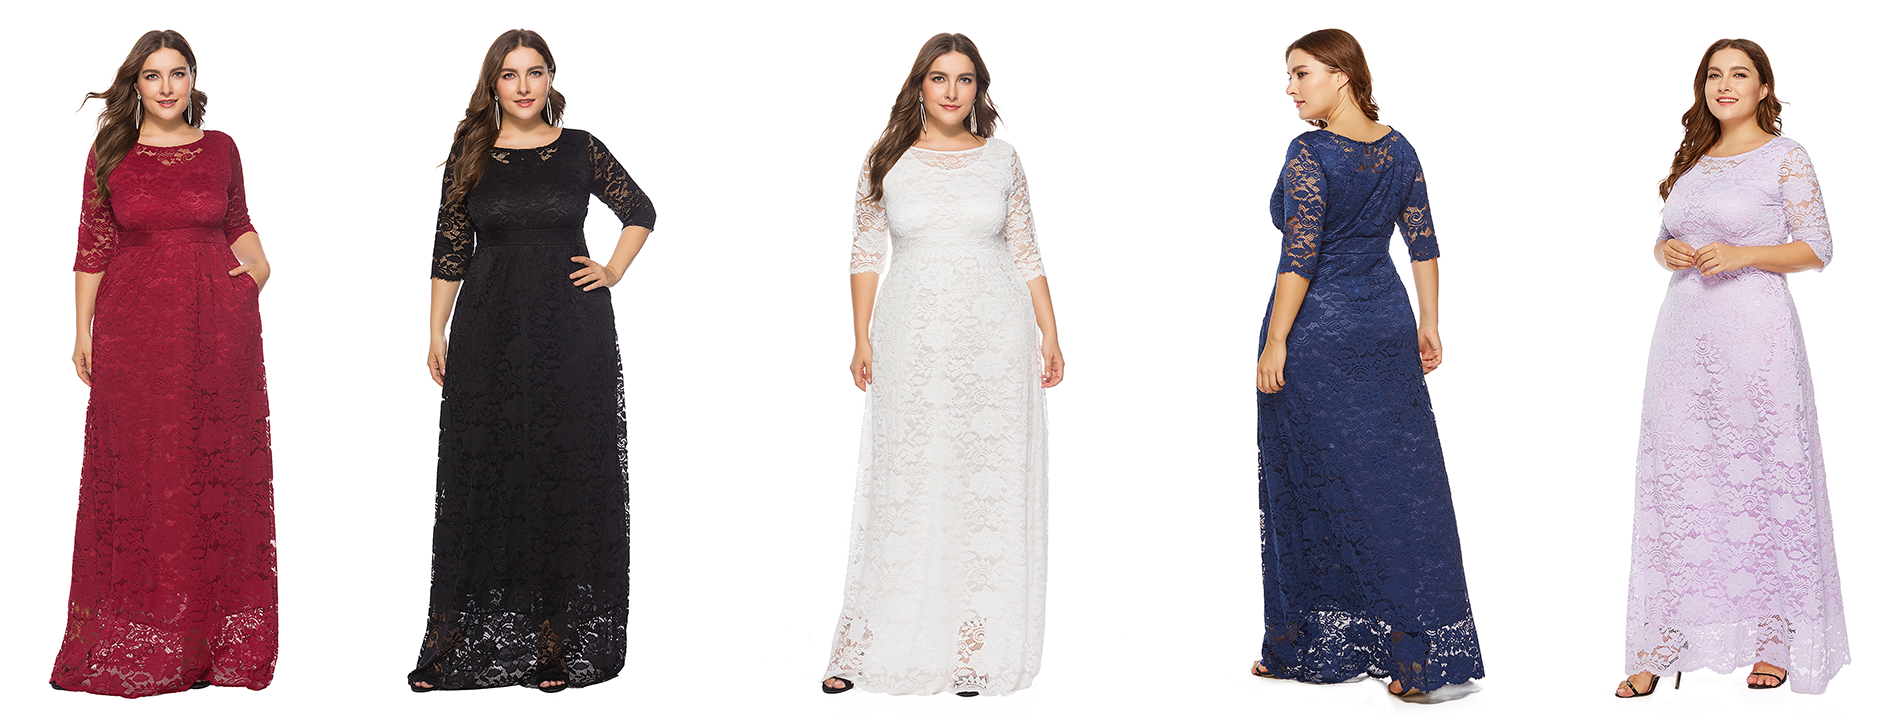 e6ddde8c04bb Plus Size Clothing for Women, Fashion Online Shopping | Blooms Boom